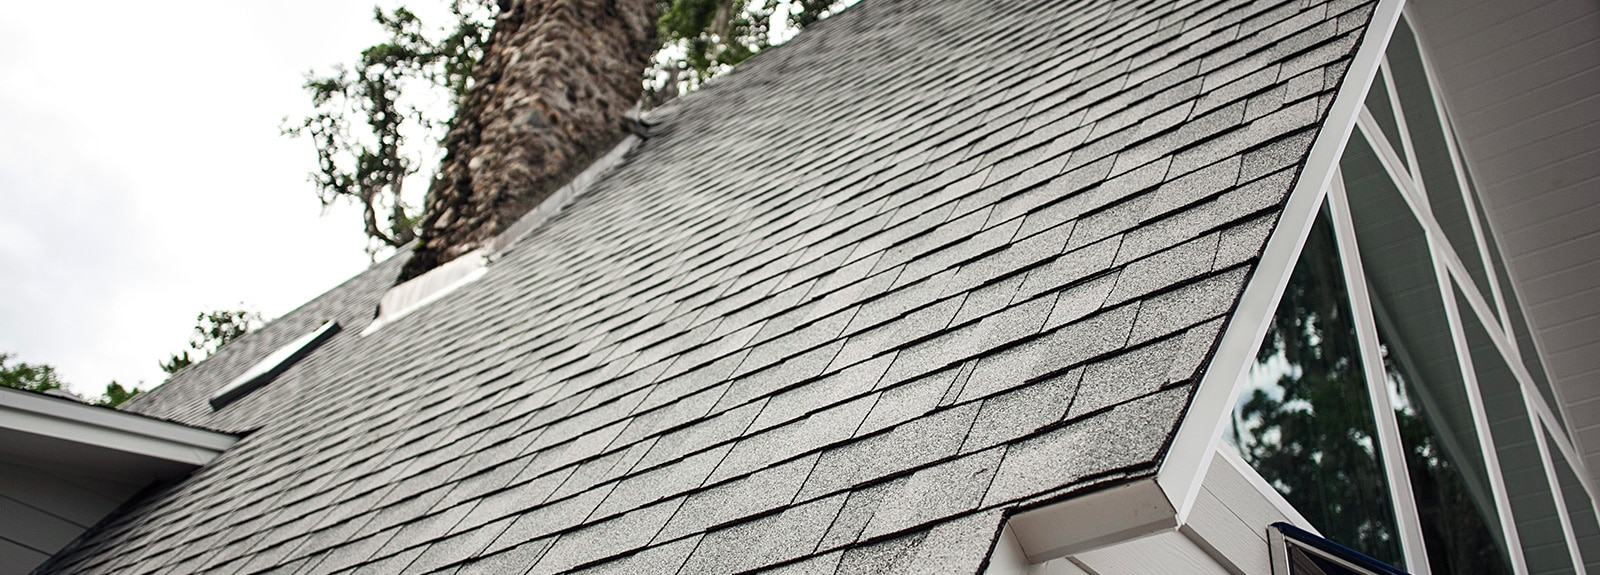 Photo of an asphalt roofing option built by McFall Residential Roofing of Gainesville.